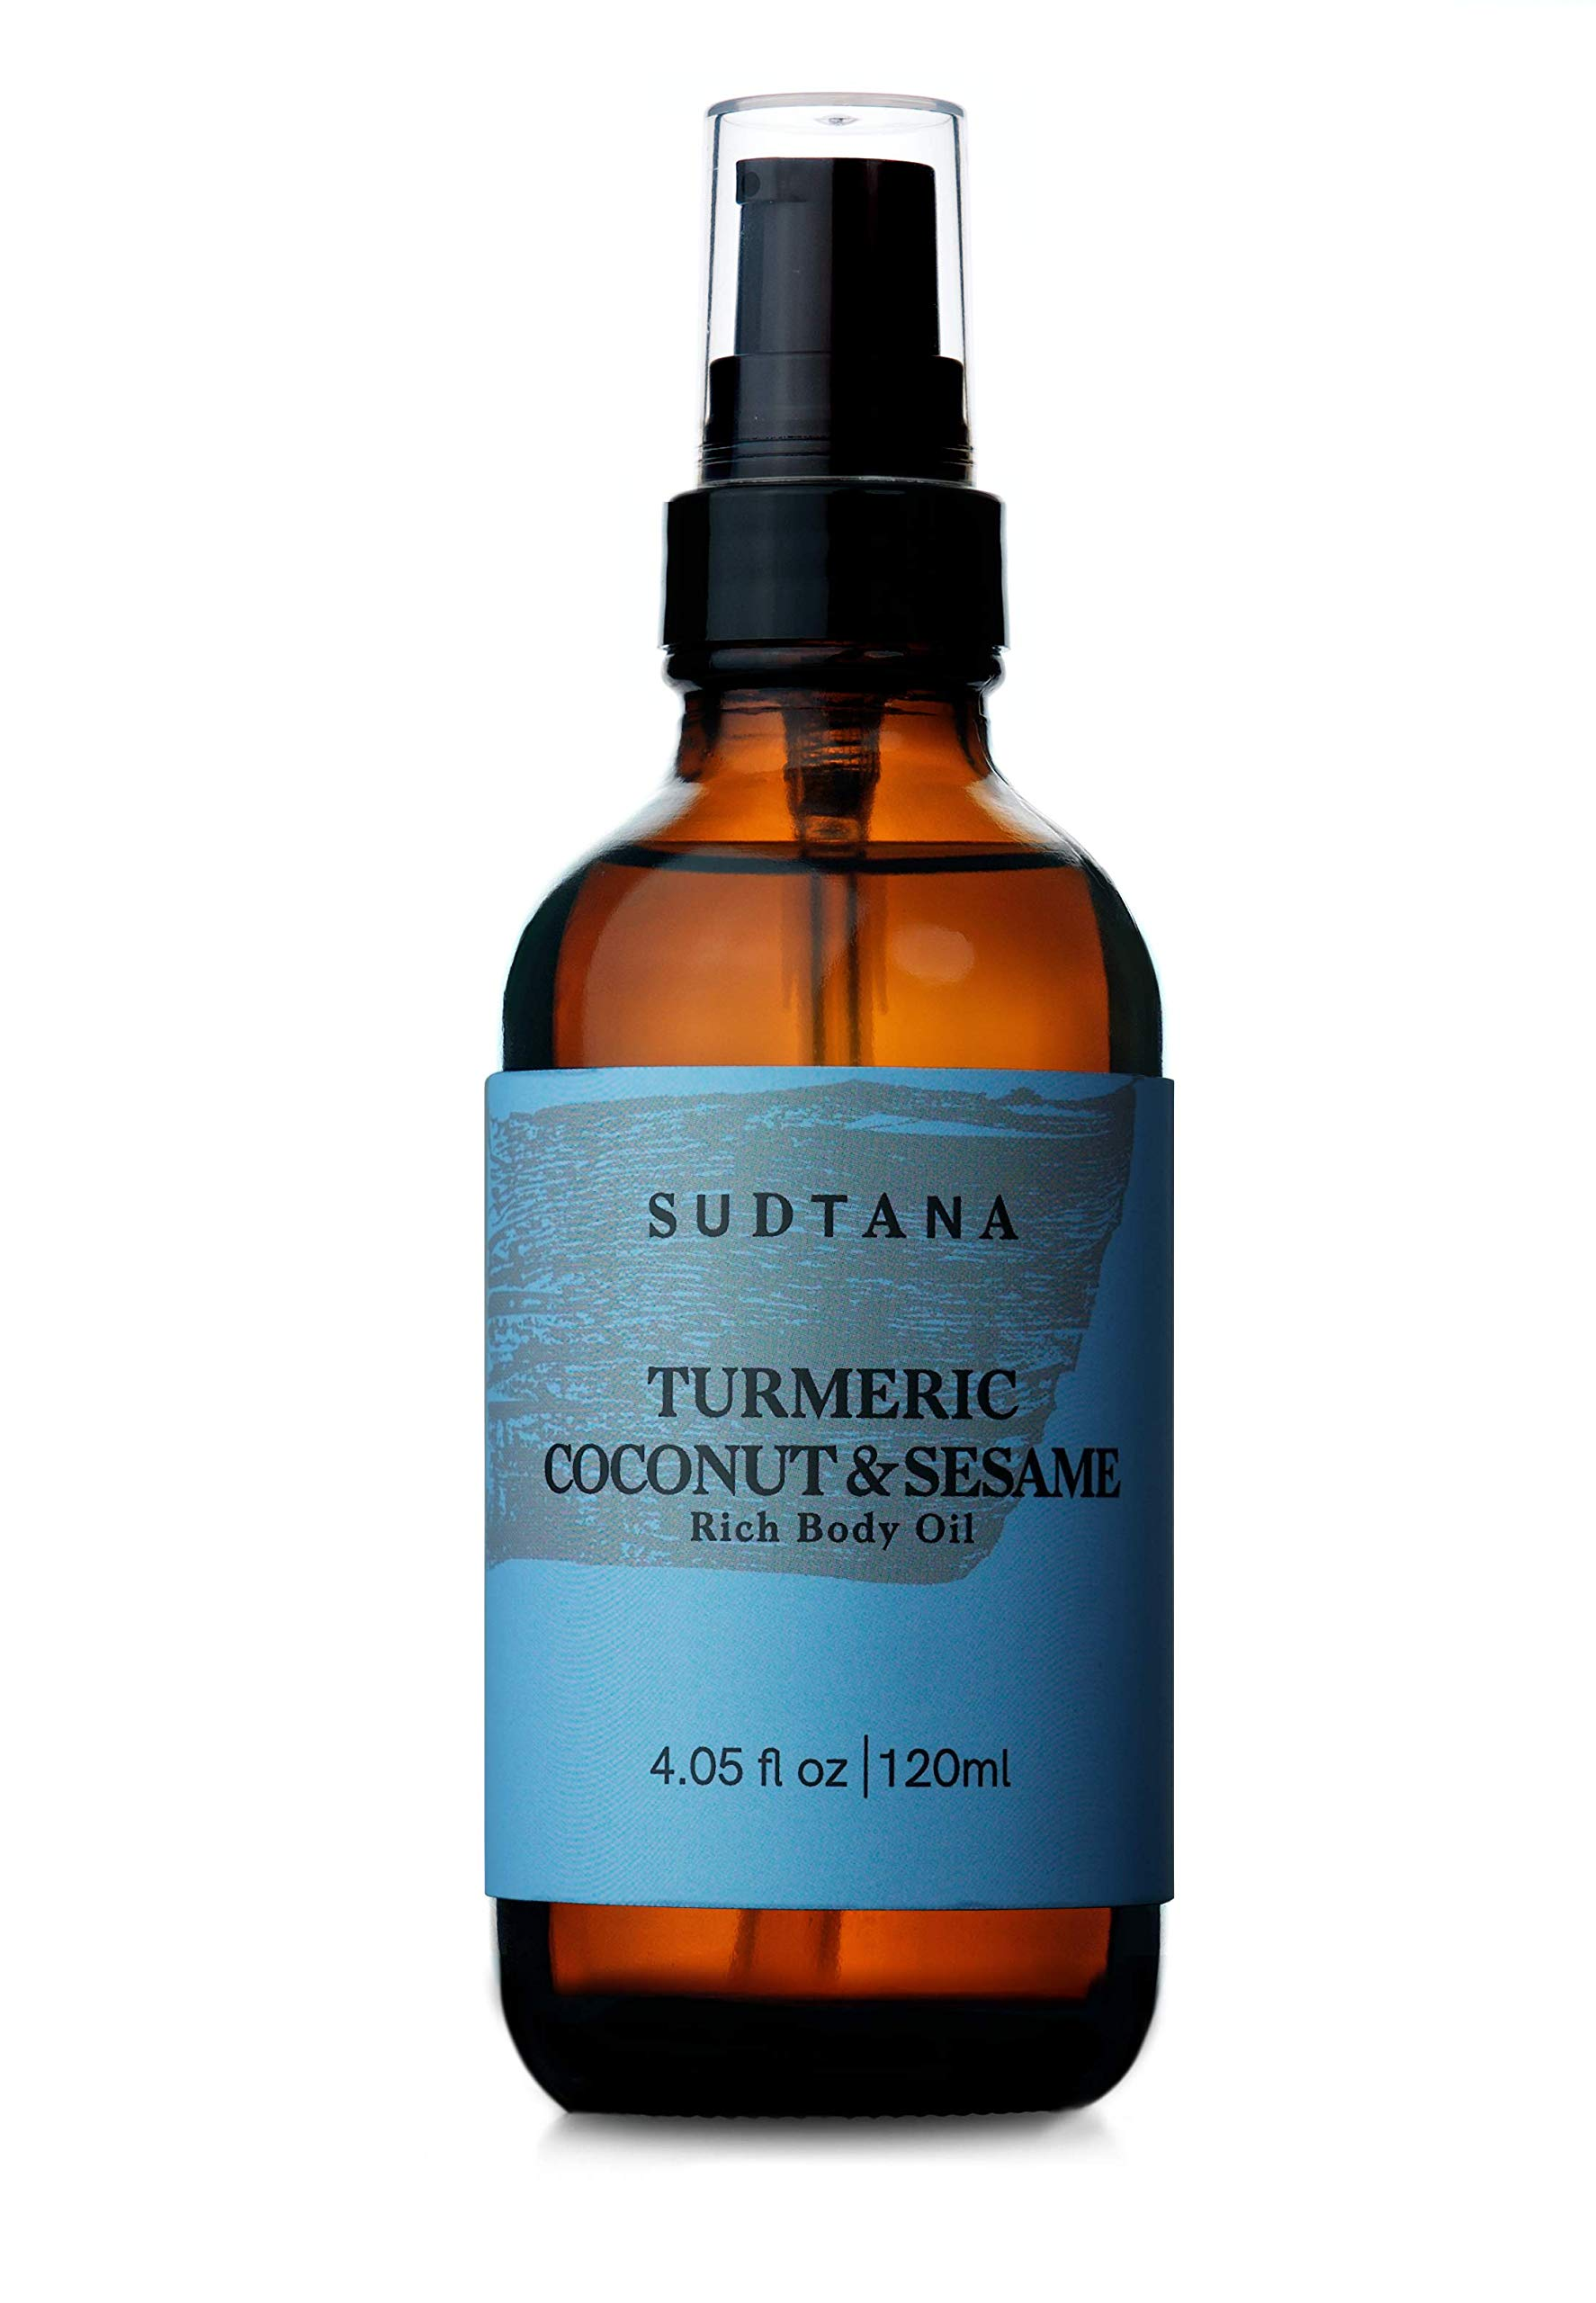 Organic Coconut & Turmeric Body Oil For Dry Skin | With Pure Premium Jojoba, Argan & Sesame Seed Oils | Natural Treatment For Moisturizing, Nourishing, Soft, Smooth and Glowing Skin